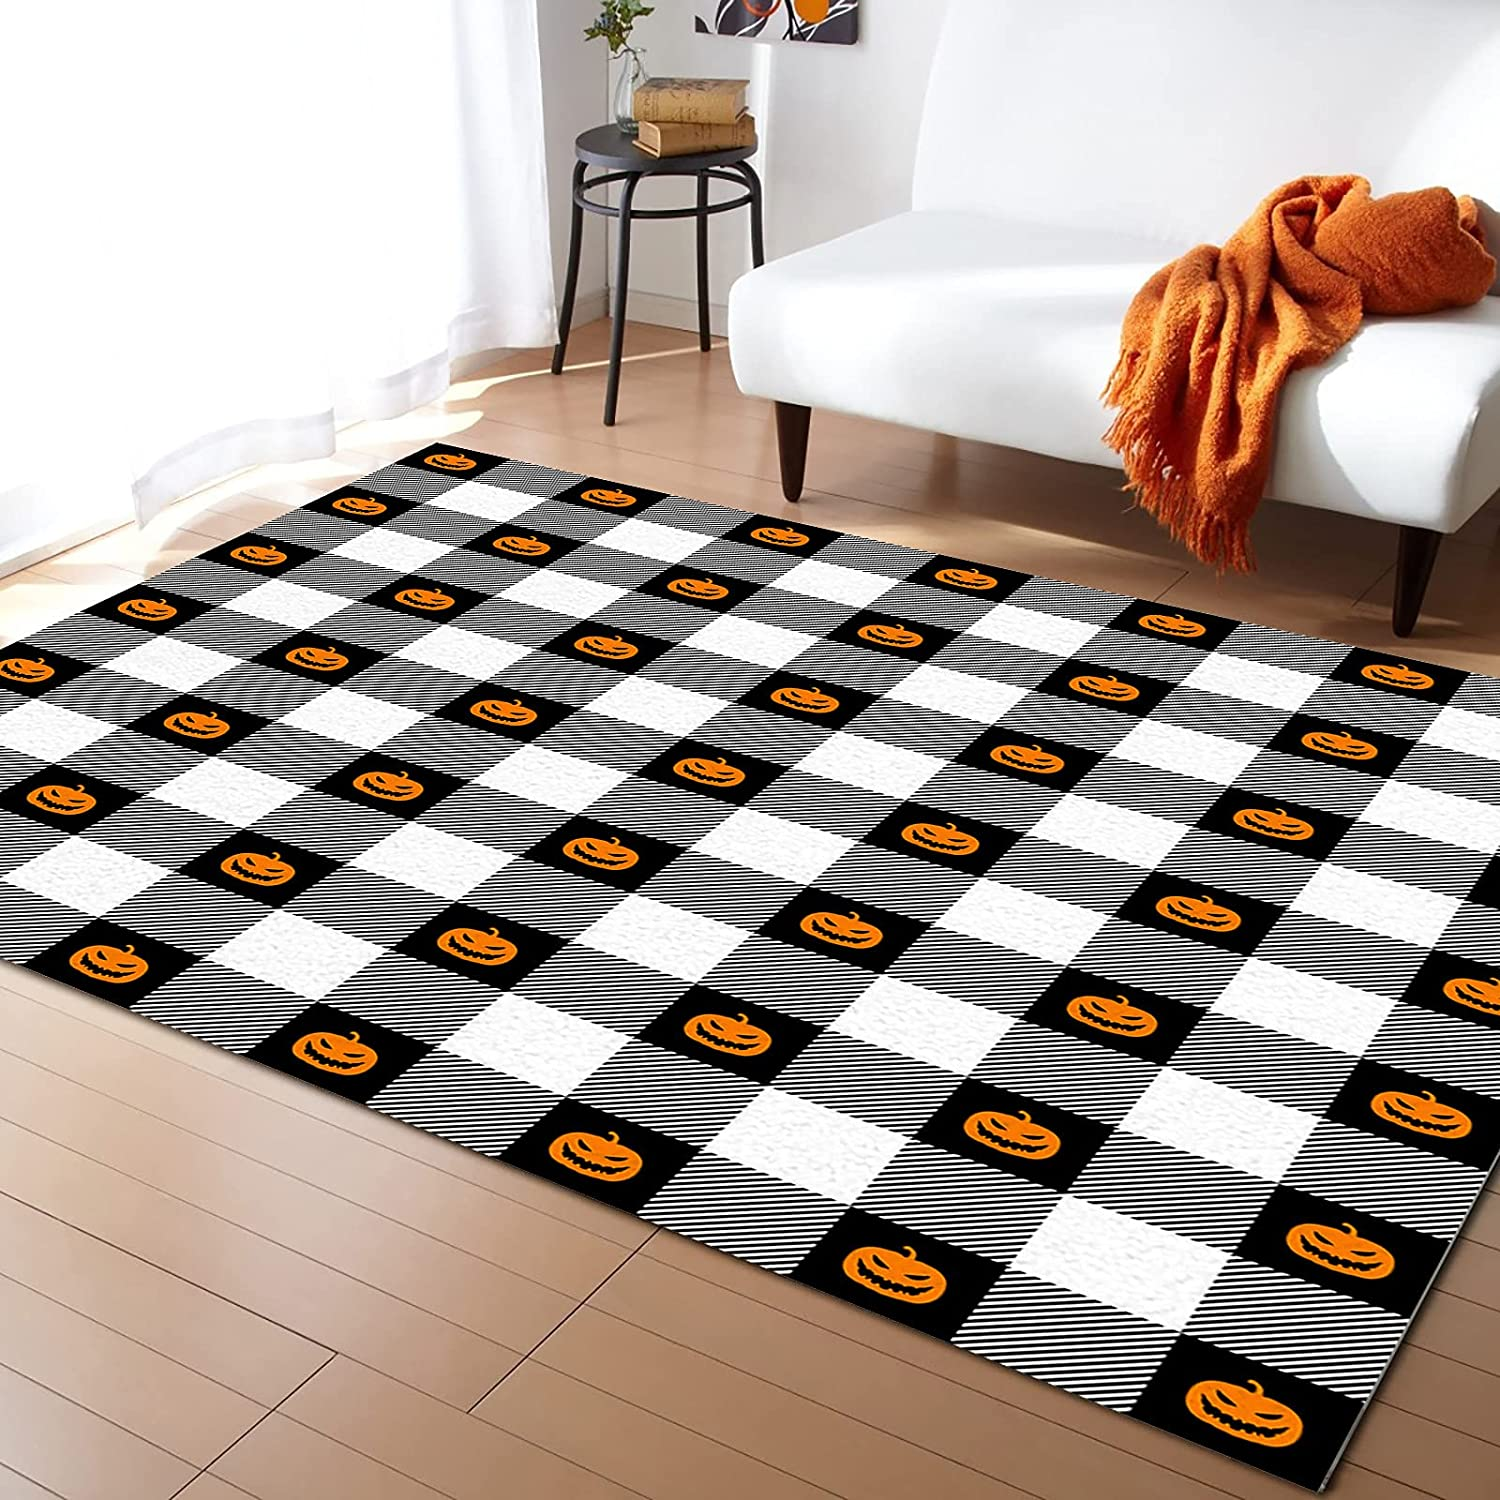 Sailground store Area Rugs for Living Room Happy Halloween Milwaukee Mall Gri Bedroom